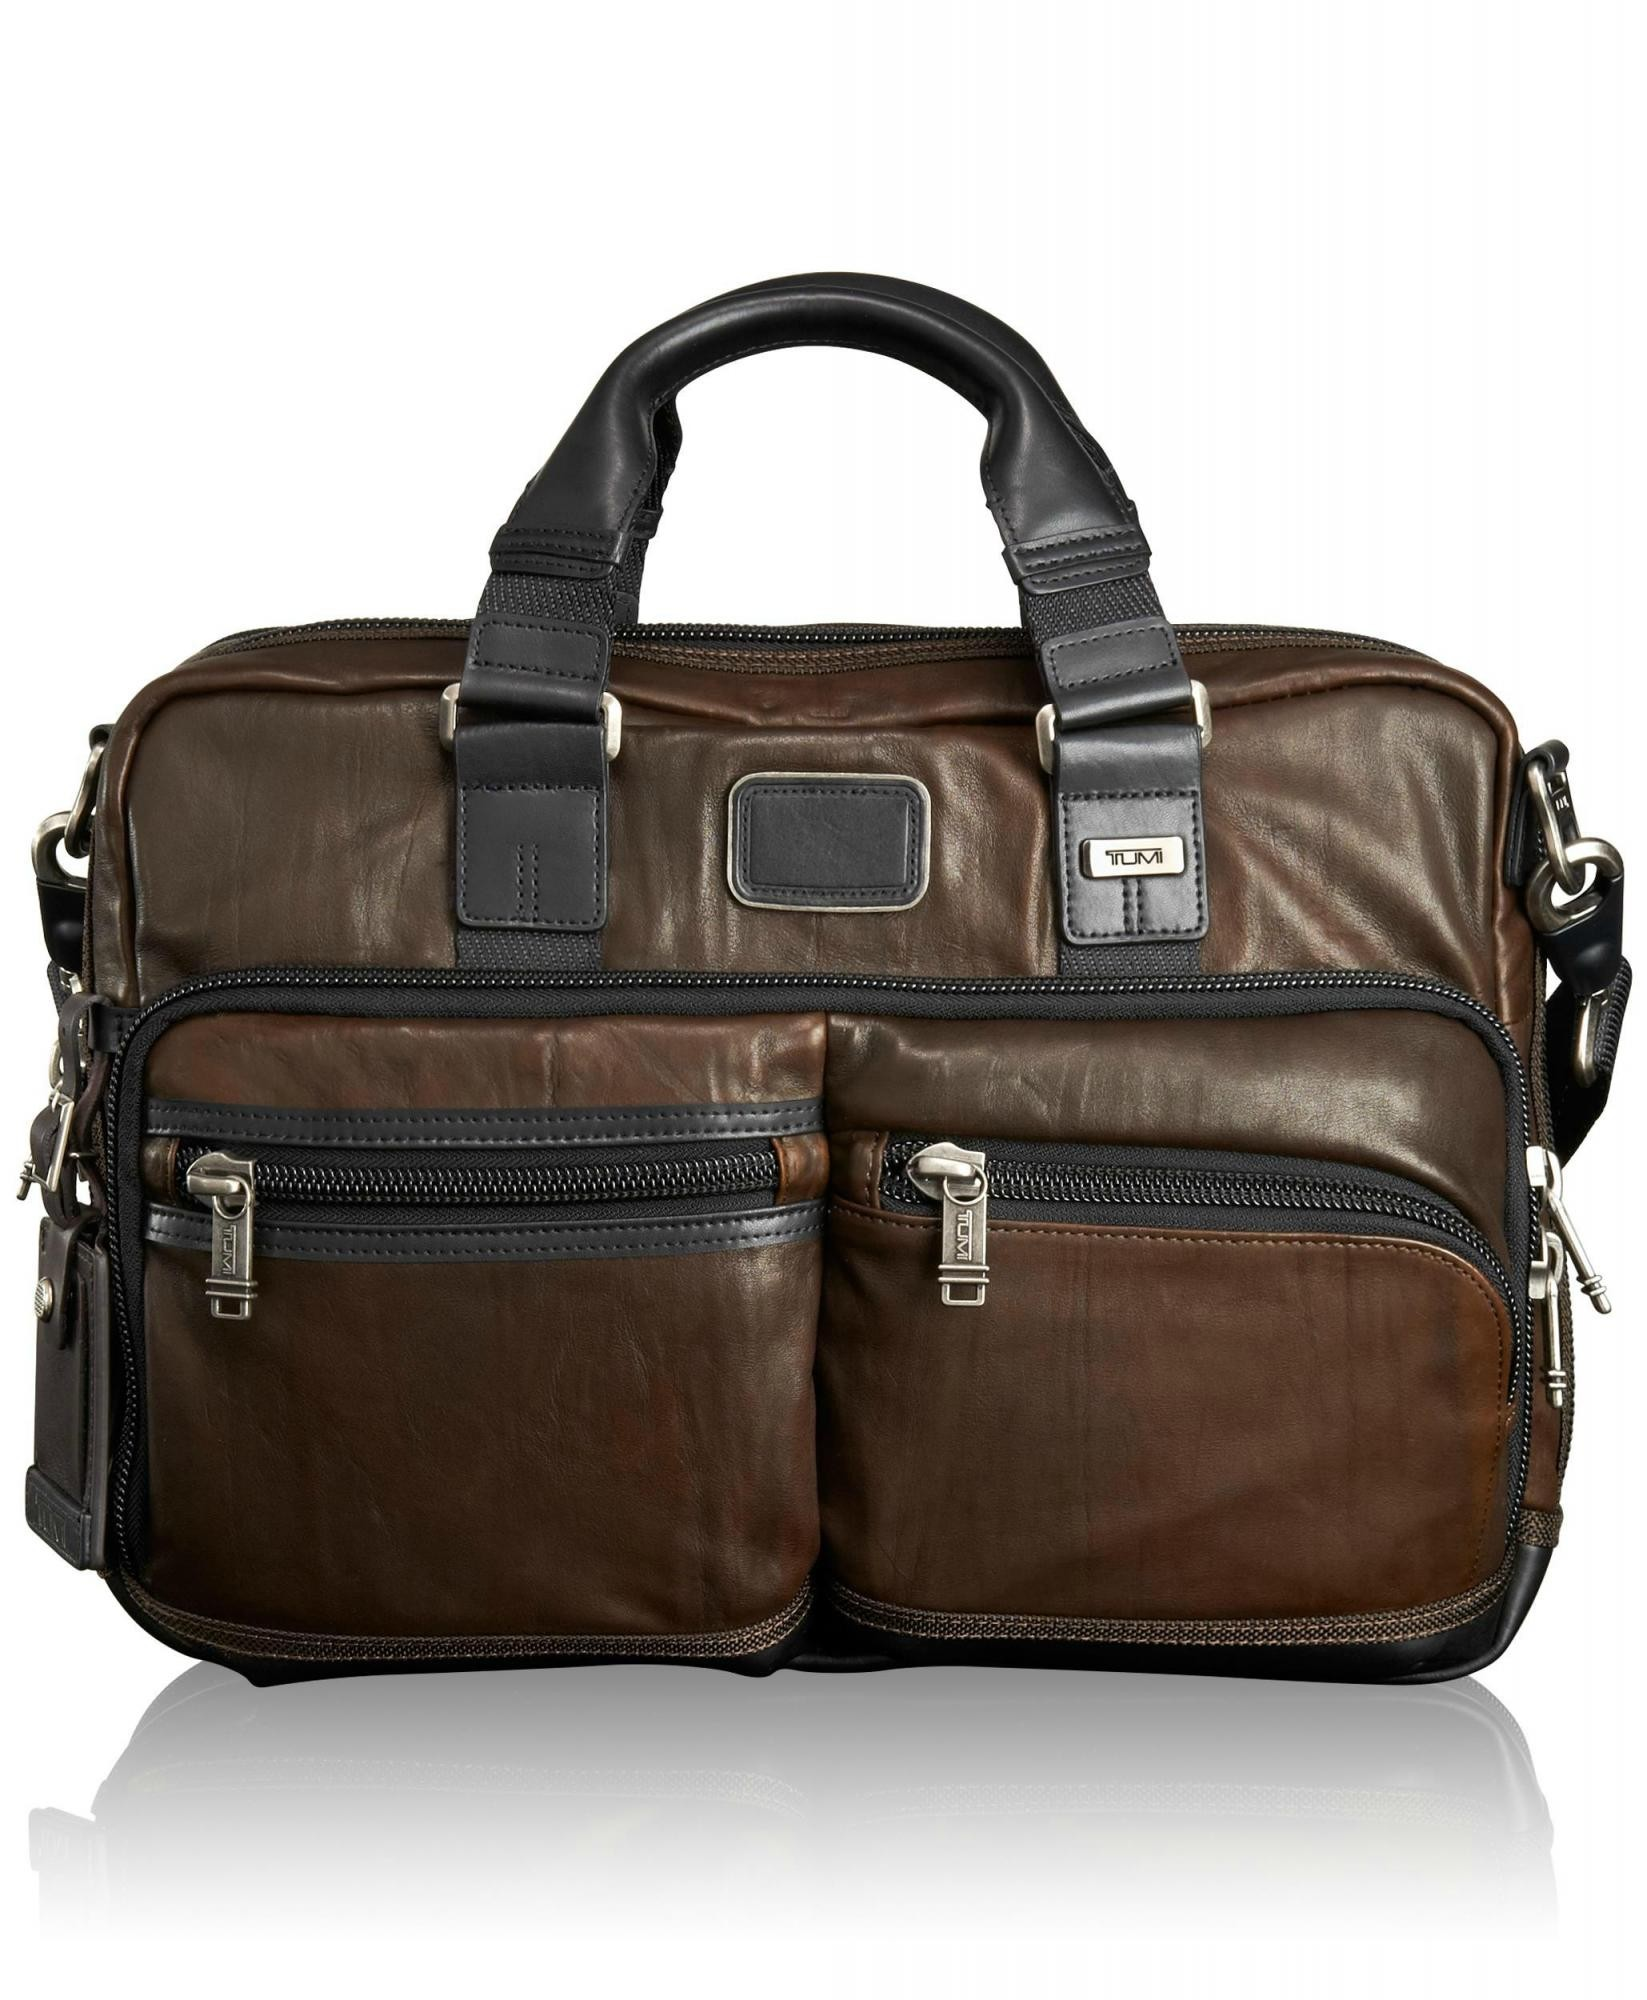 Elegant Tumi Alpha Bravo for Cool Travel Bag Ideas: Tumi Alpha Bravo | Tumi Alpha Bravo Essential Tote | Tumi Alpha Bravo Everett Essential Tote